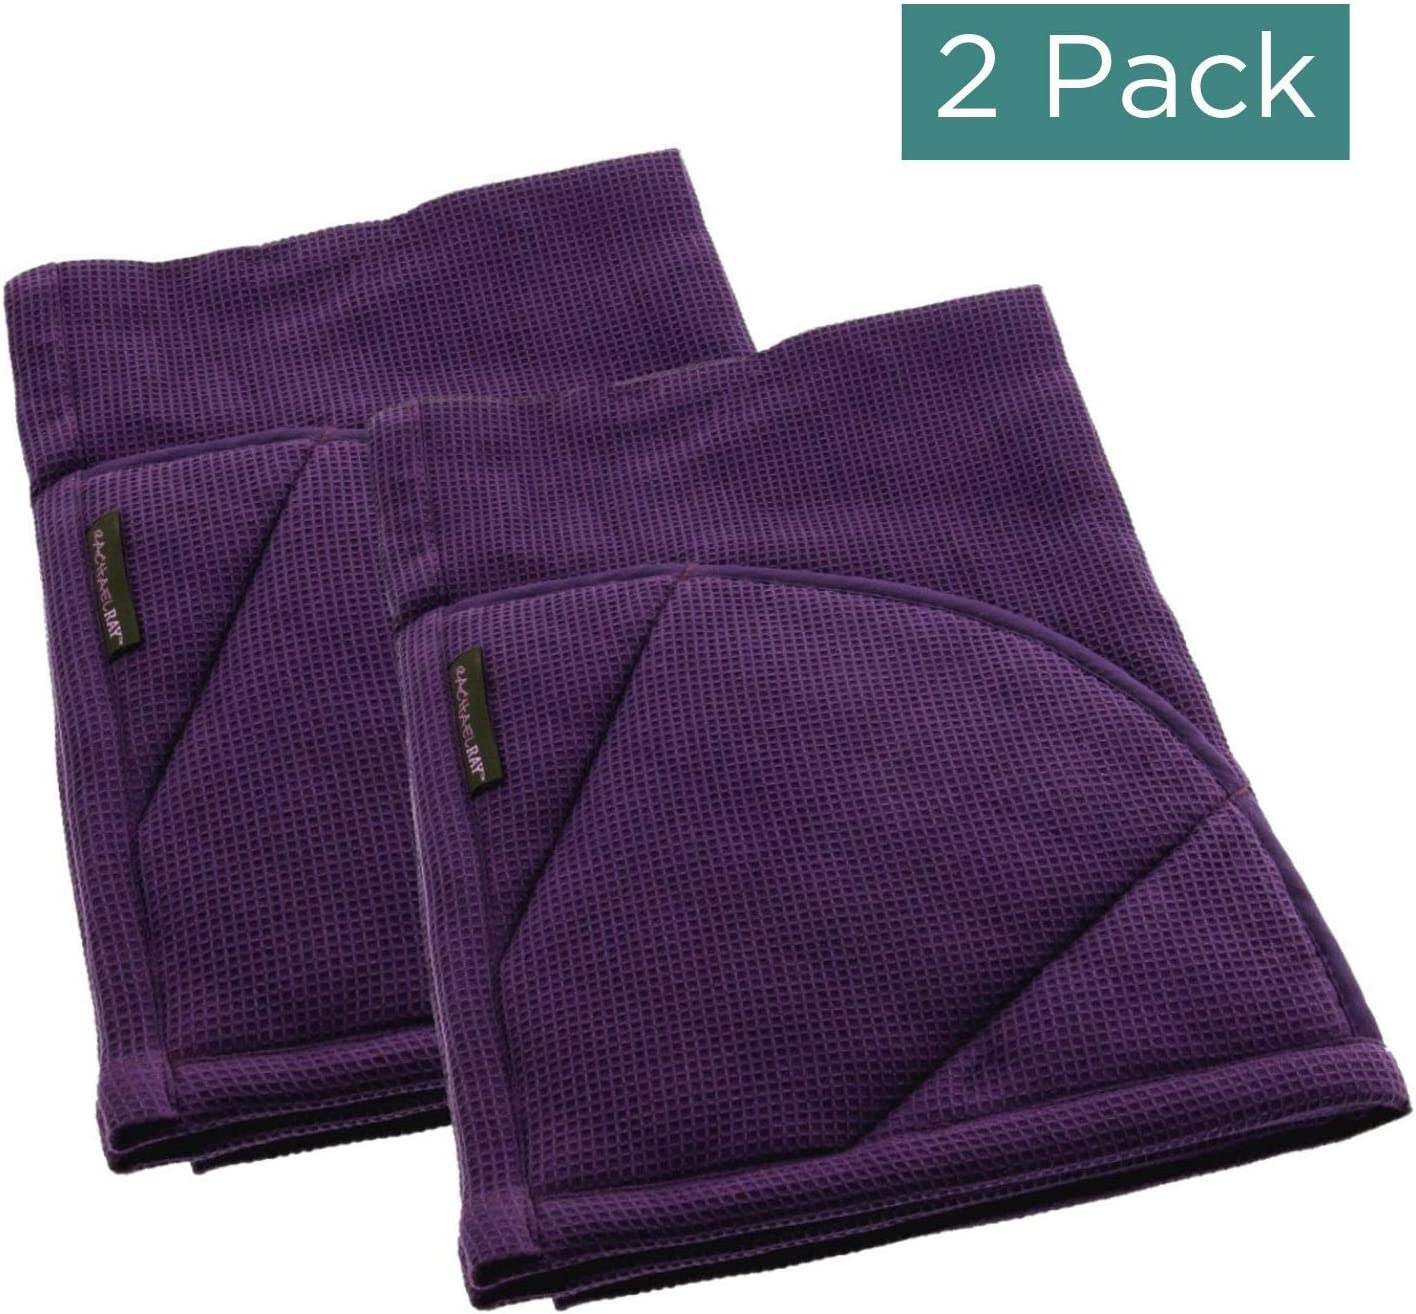 Rachael Ray Kitchen Towel, Oven Glove Moppine - 2-in-1 Ultra Absorbent Kitchen Towels with Heat Resistant Padded Pockets Like Pot Holders and Oven Mitts to Handle Hot Cookware - Lavender, 2 Pack